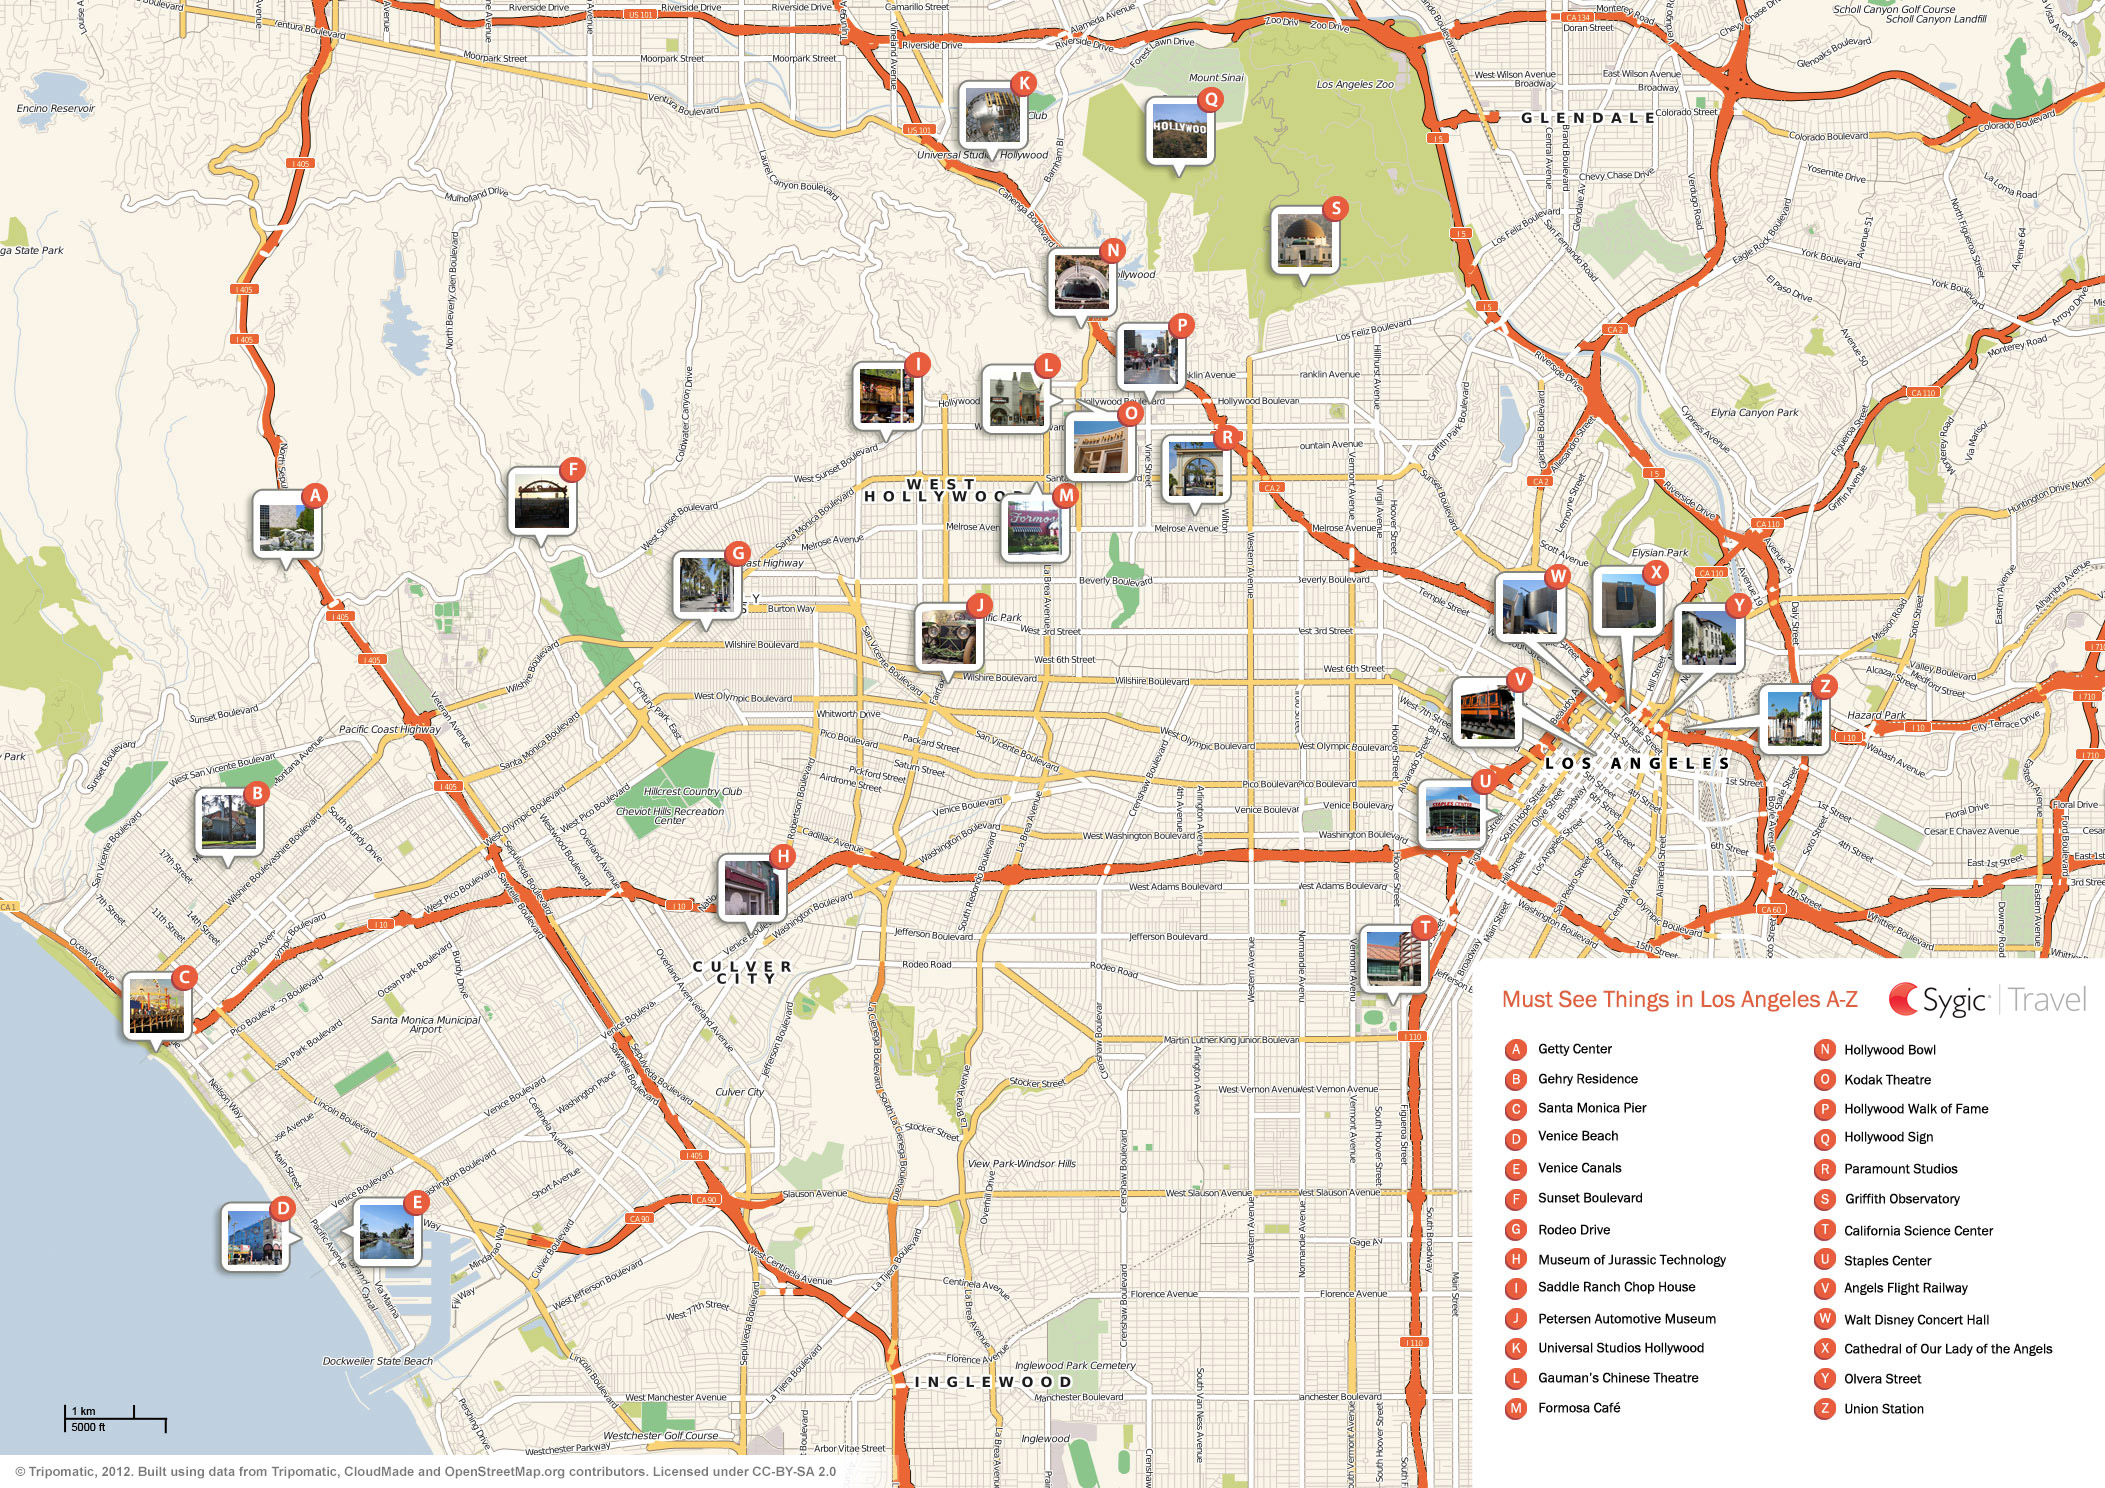 Los Angeles Printable Tourist Map  Sygic Travel